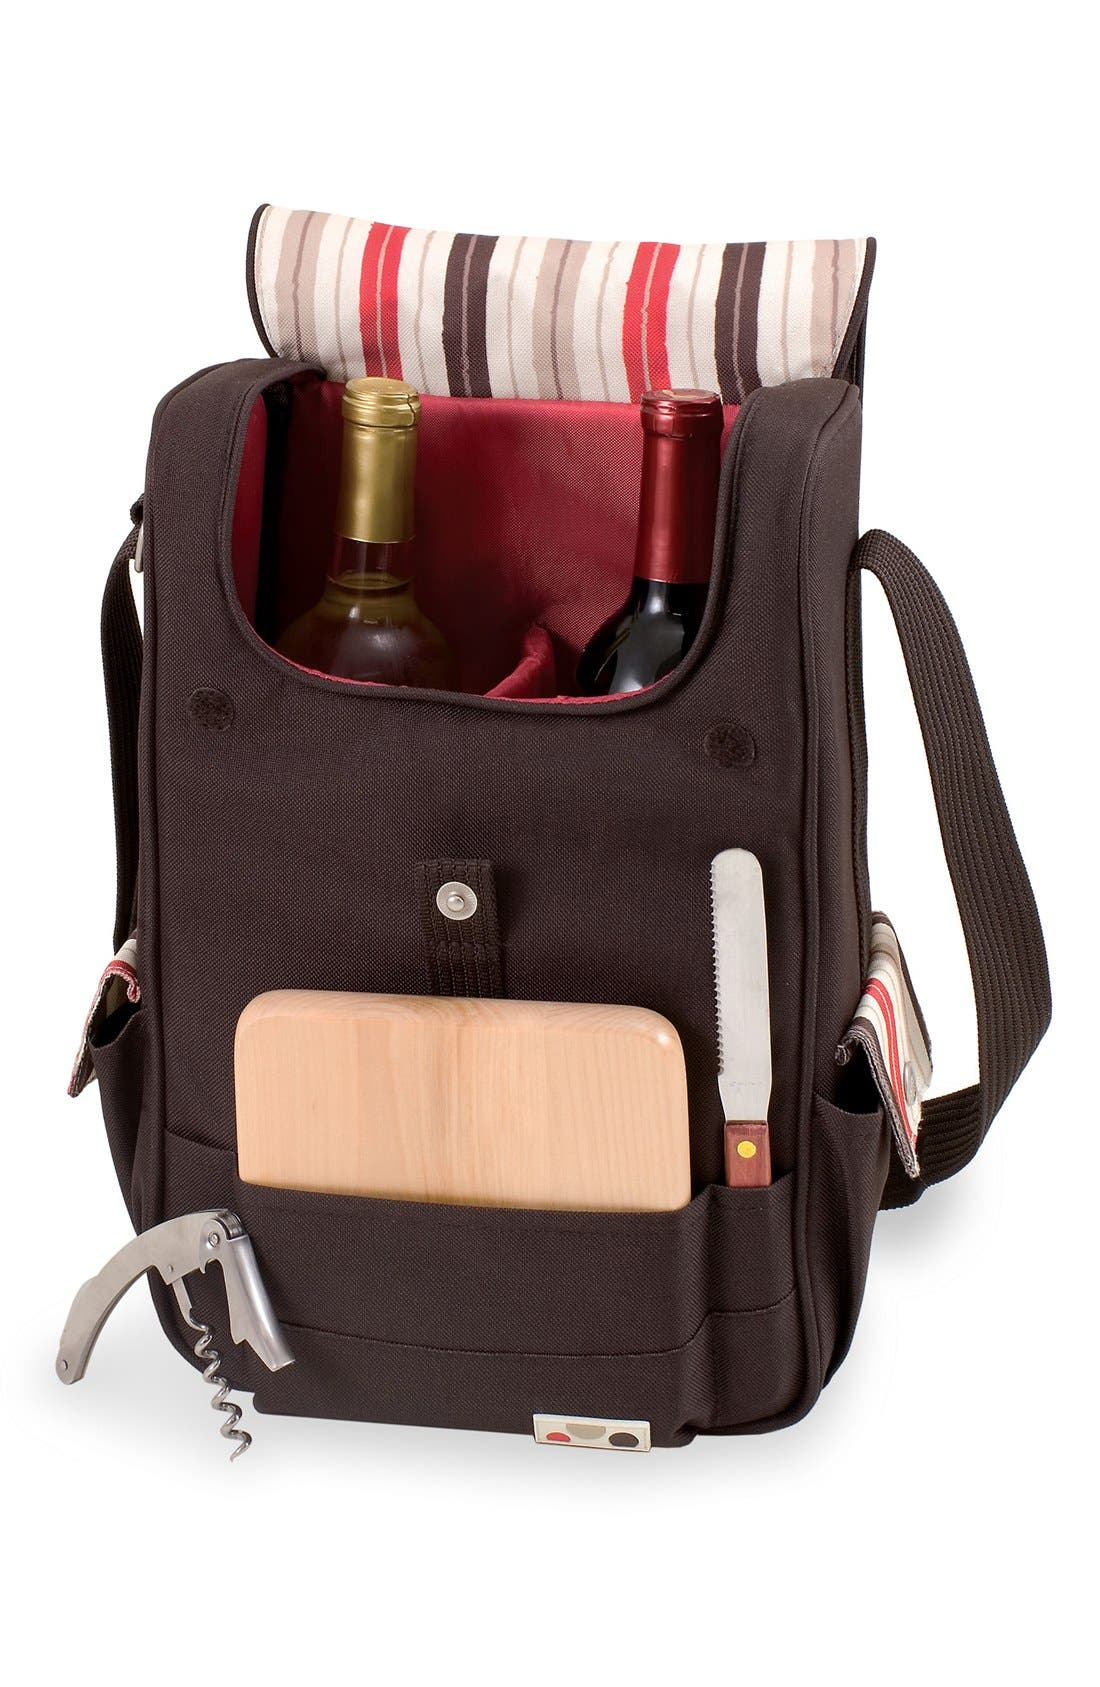 'Volare' Wine & Cheese Tote,                             Main thumbnail 1, color,                             200